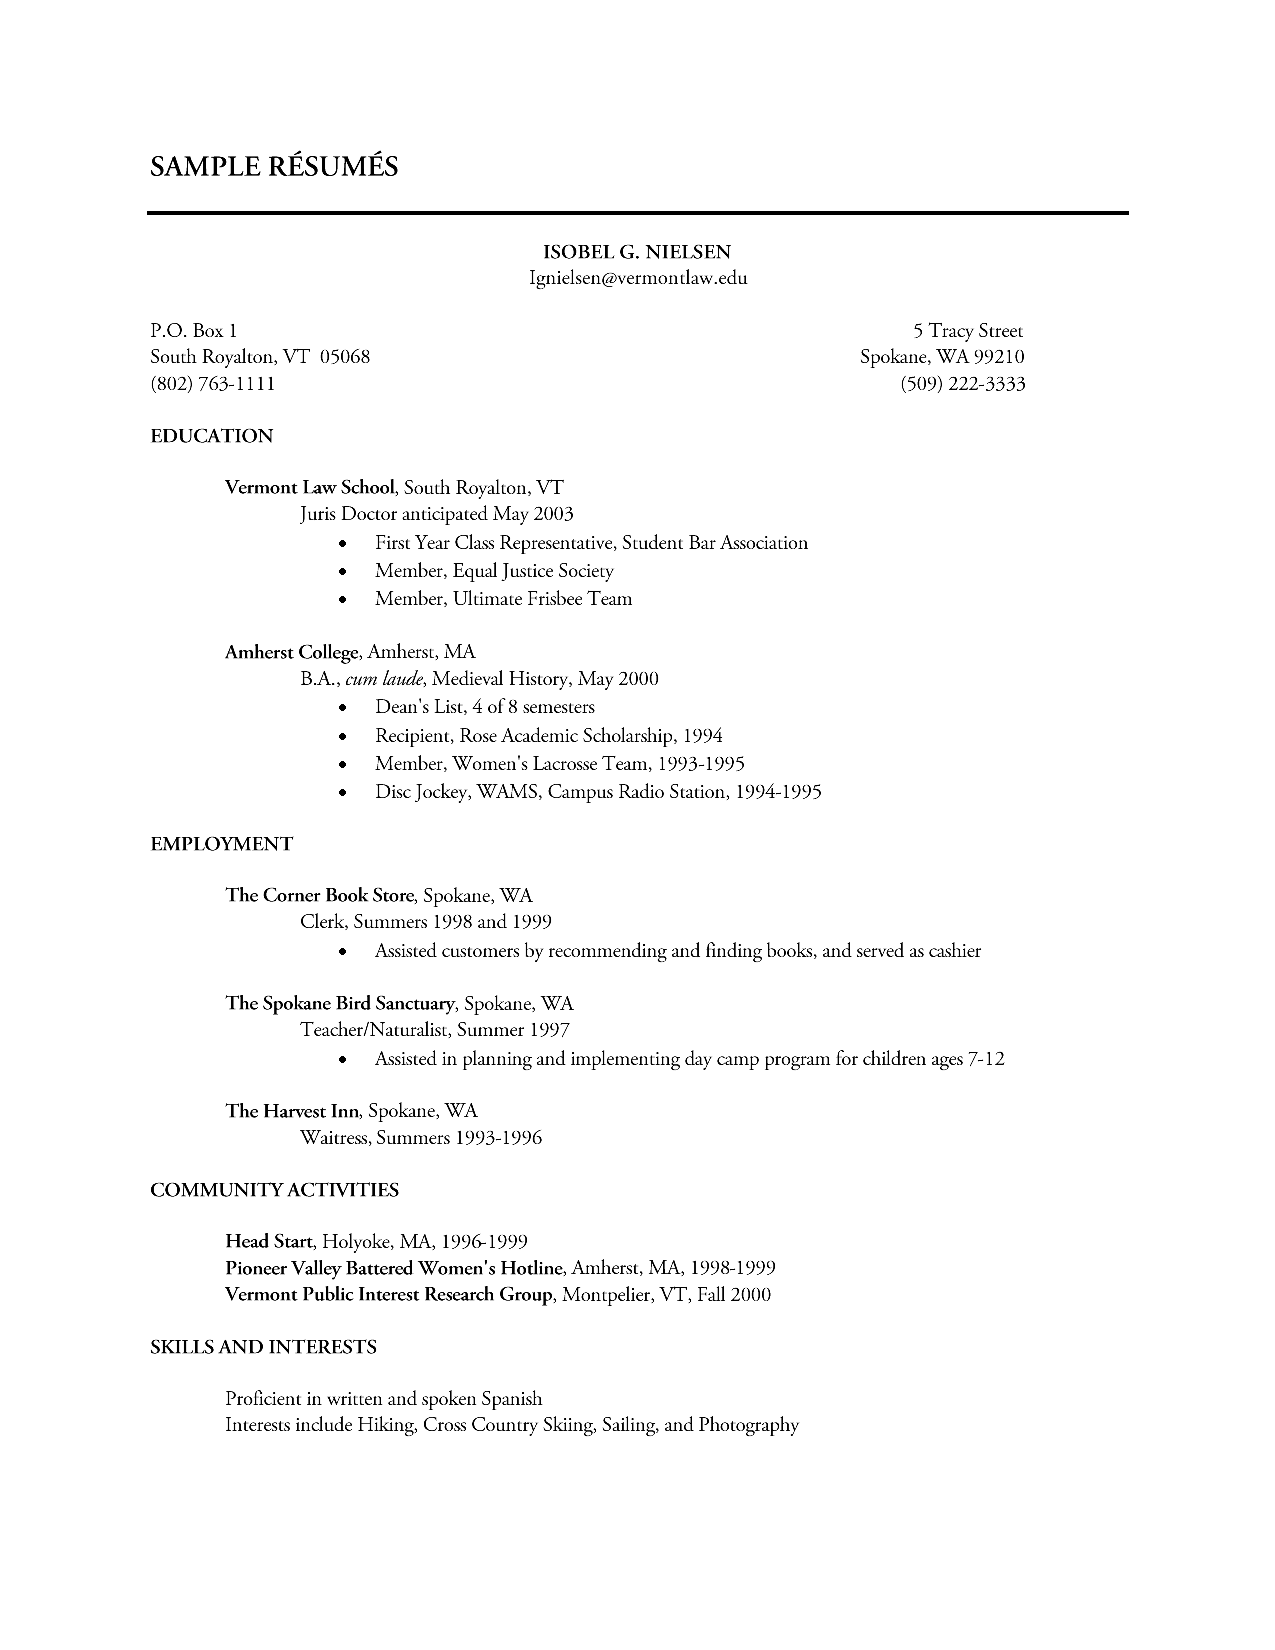 sample resume showing volunteer work